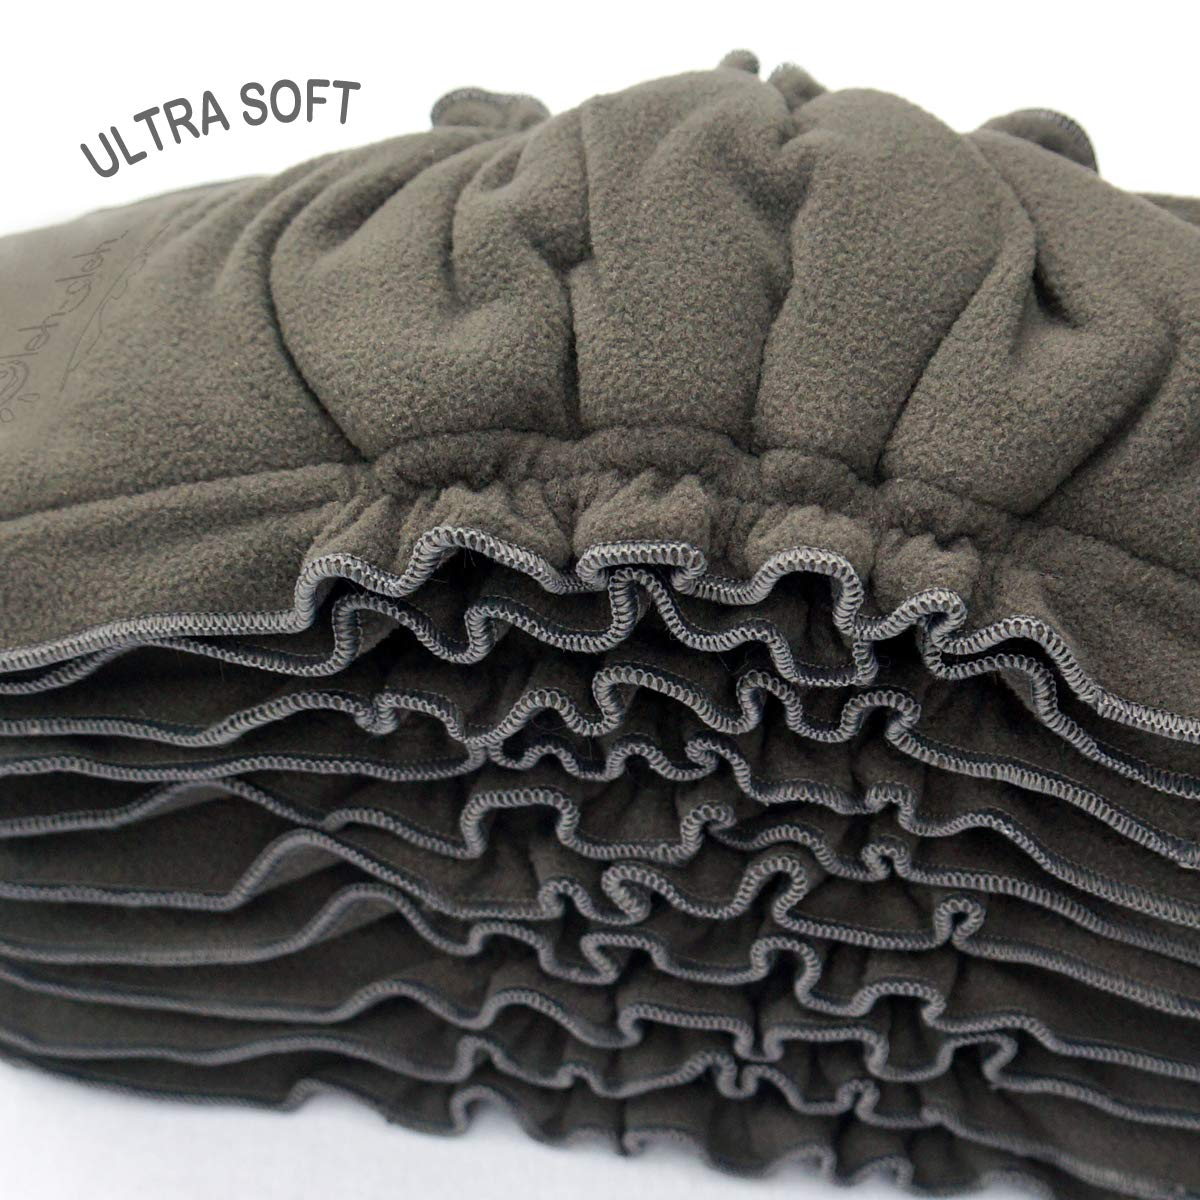 One Size Fits All Oleh-Oleh 10 Pack Premium Charcoal Bamboo Cloth Diaper Reusable Liners with Gussets 5-Layer Inserts Soft Washable for Pocket Diapers Brown